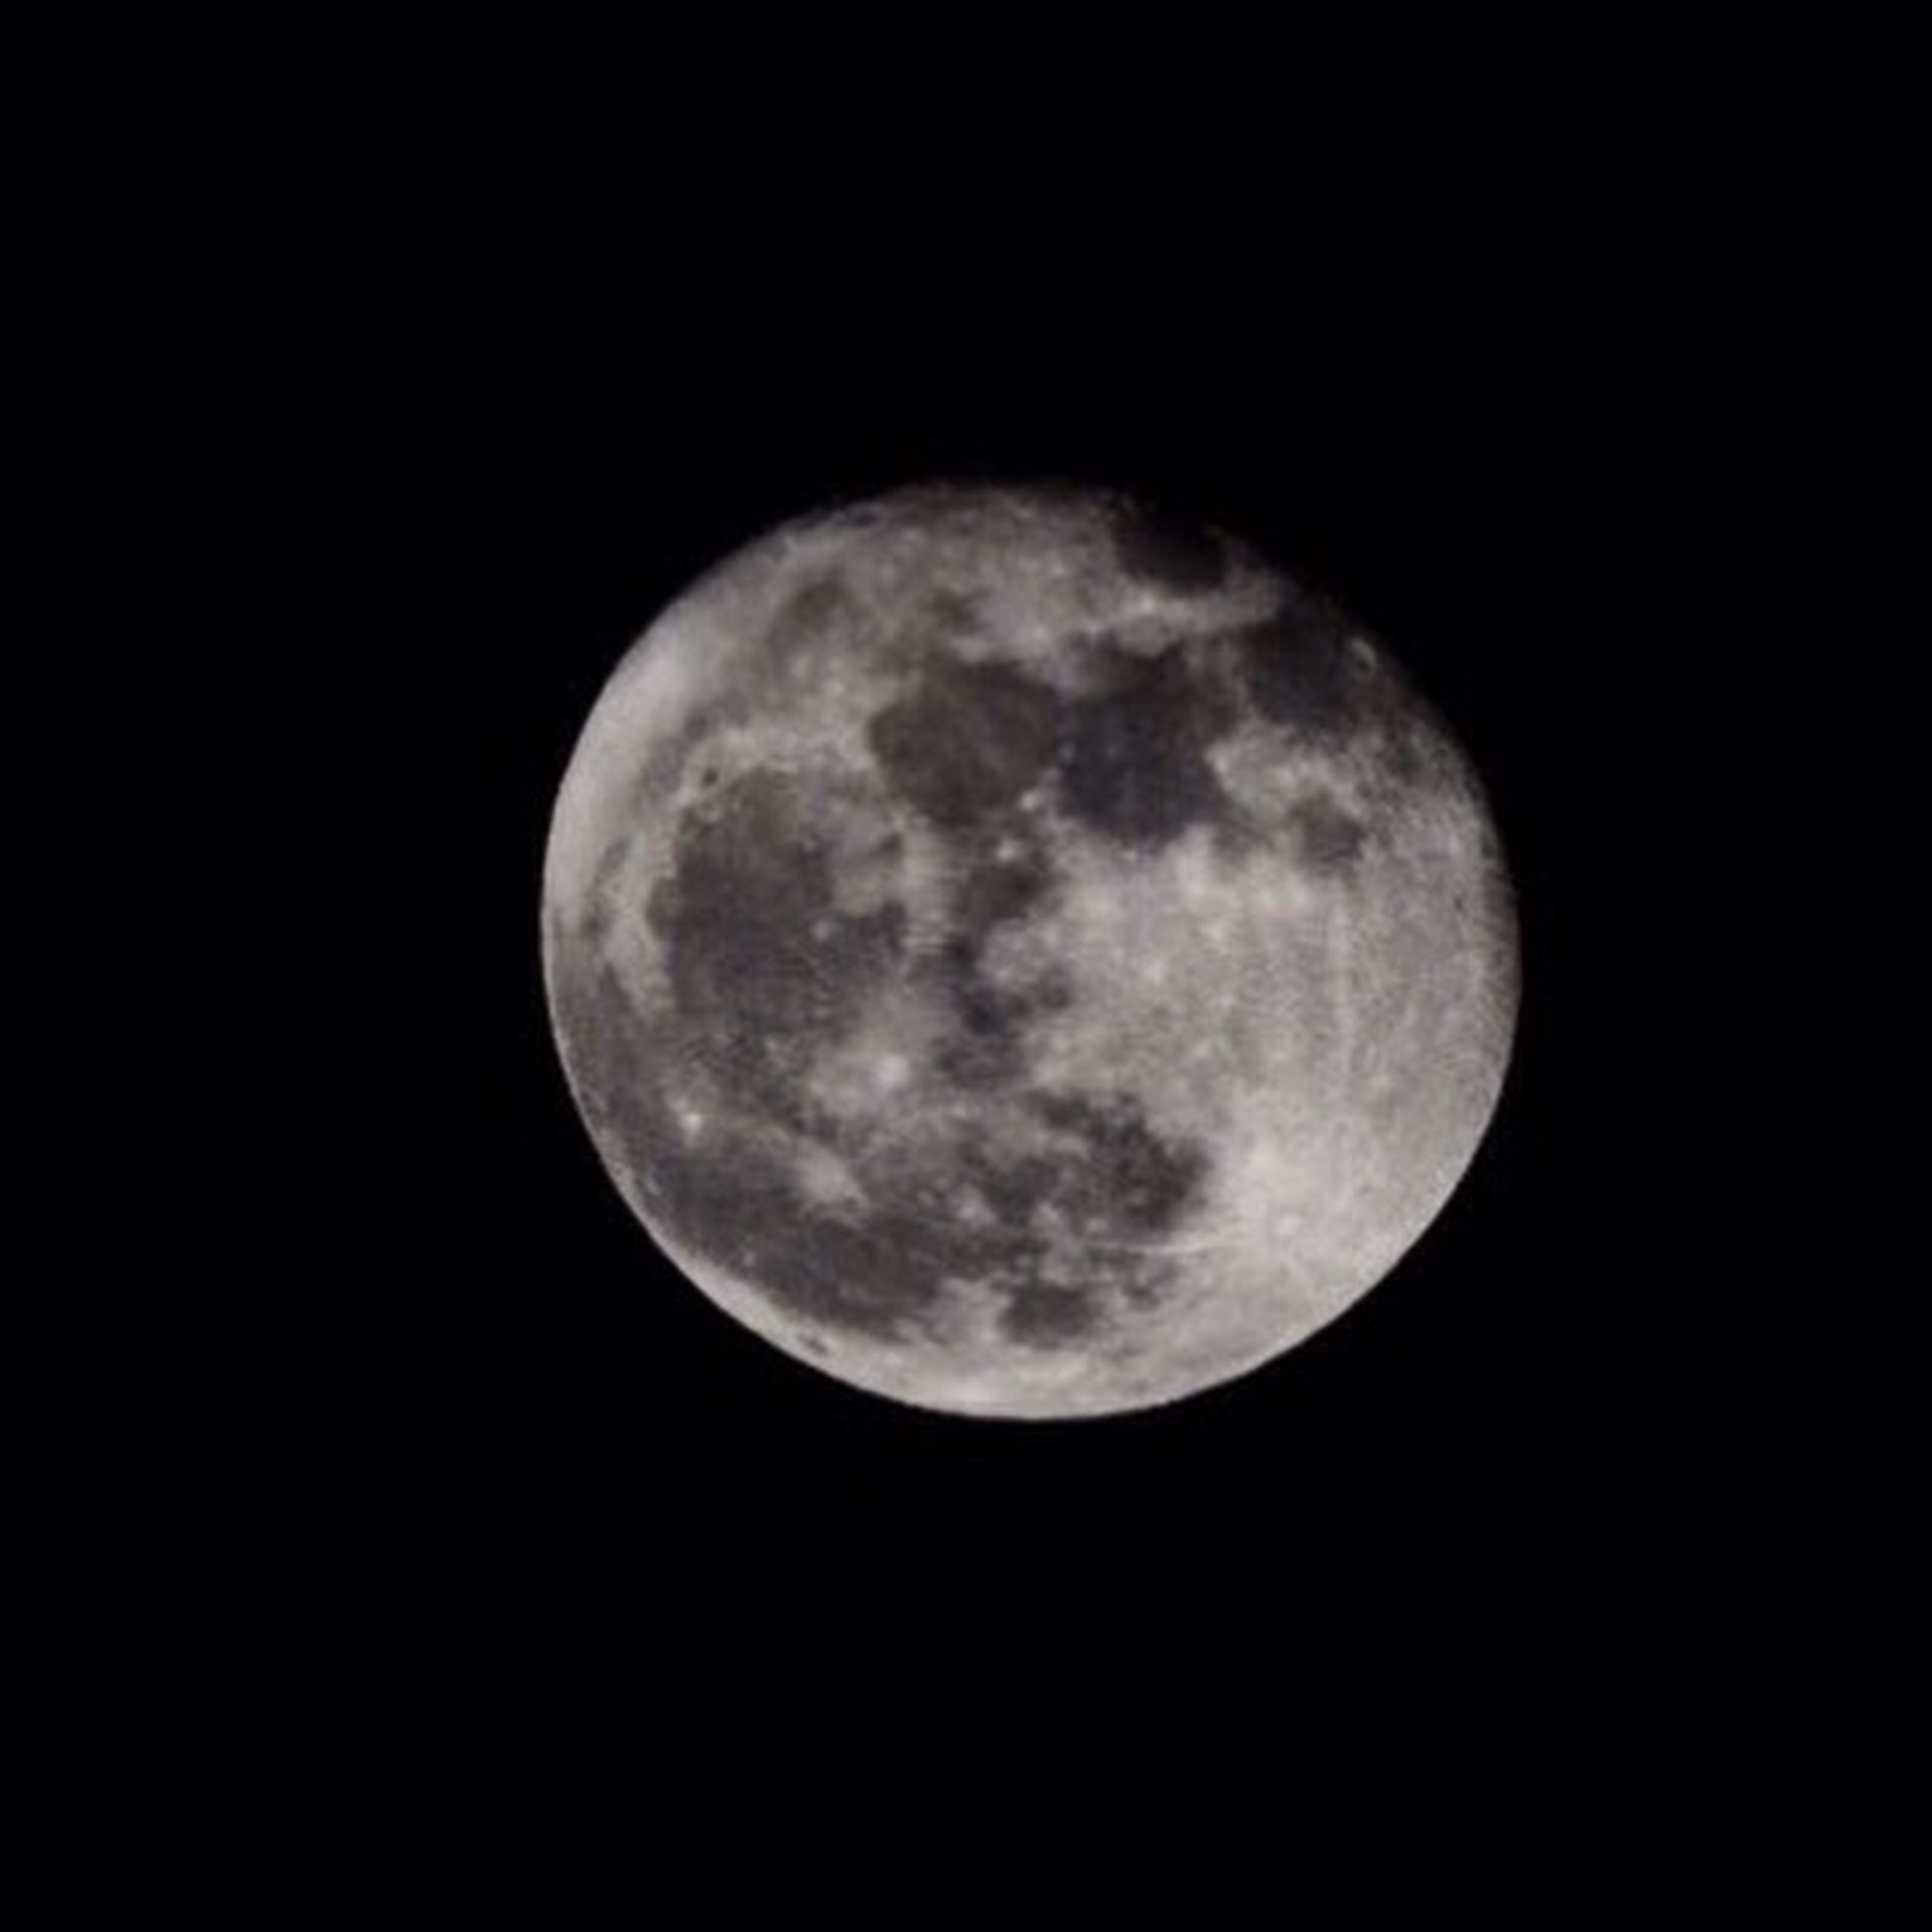 moon, night, full moon, astronomy, tranquility, nature, moon surface, no people, beauty in nature, outdoors, planetary moon, space, sky